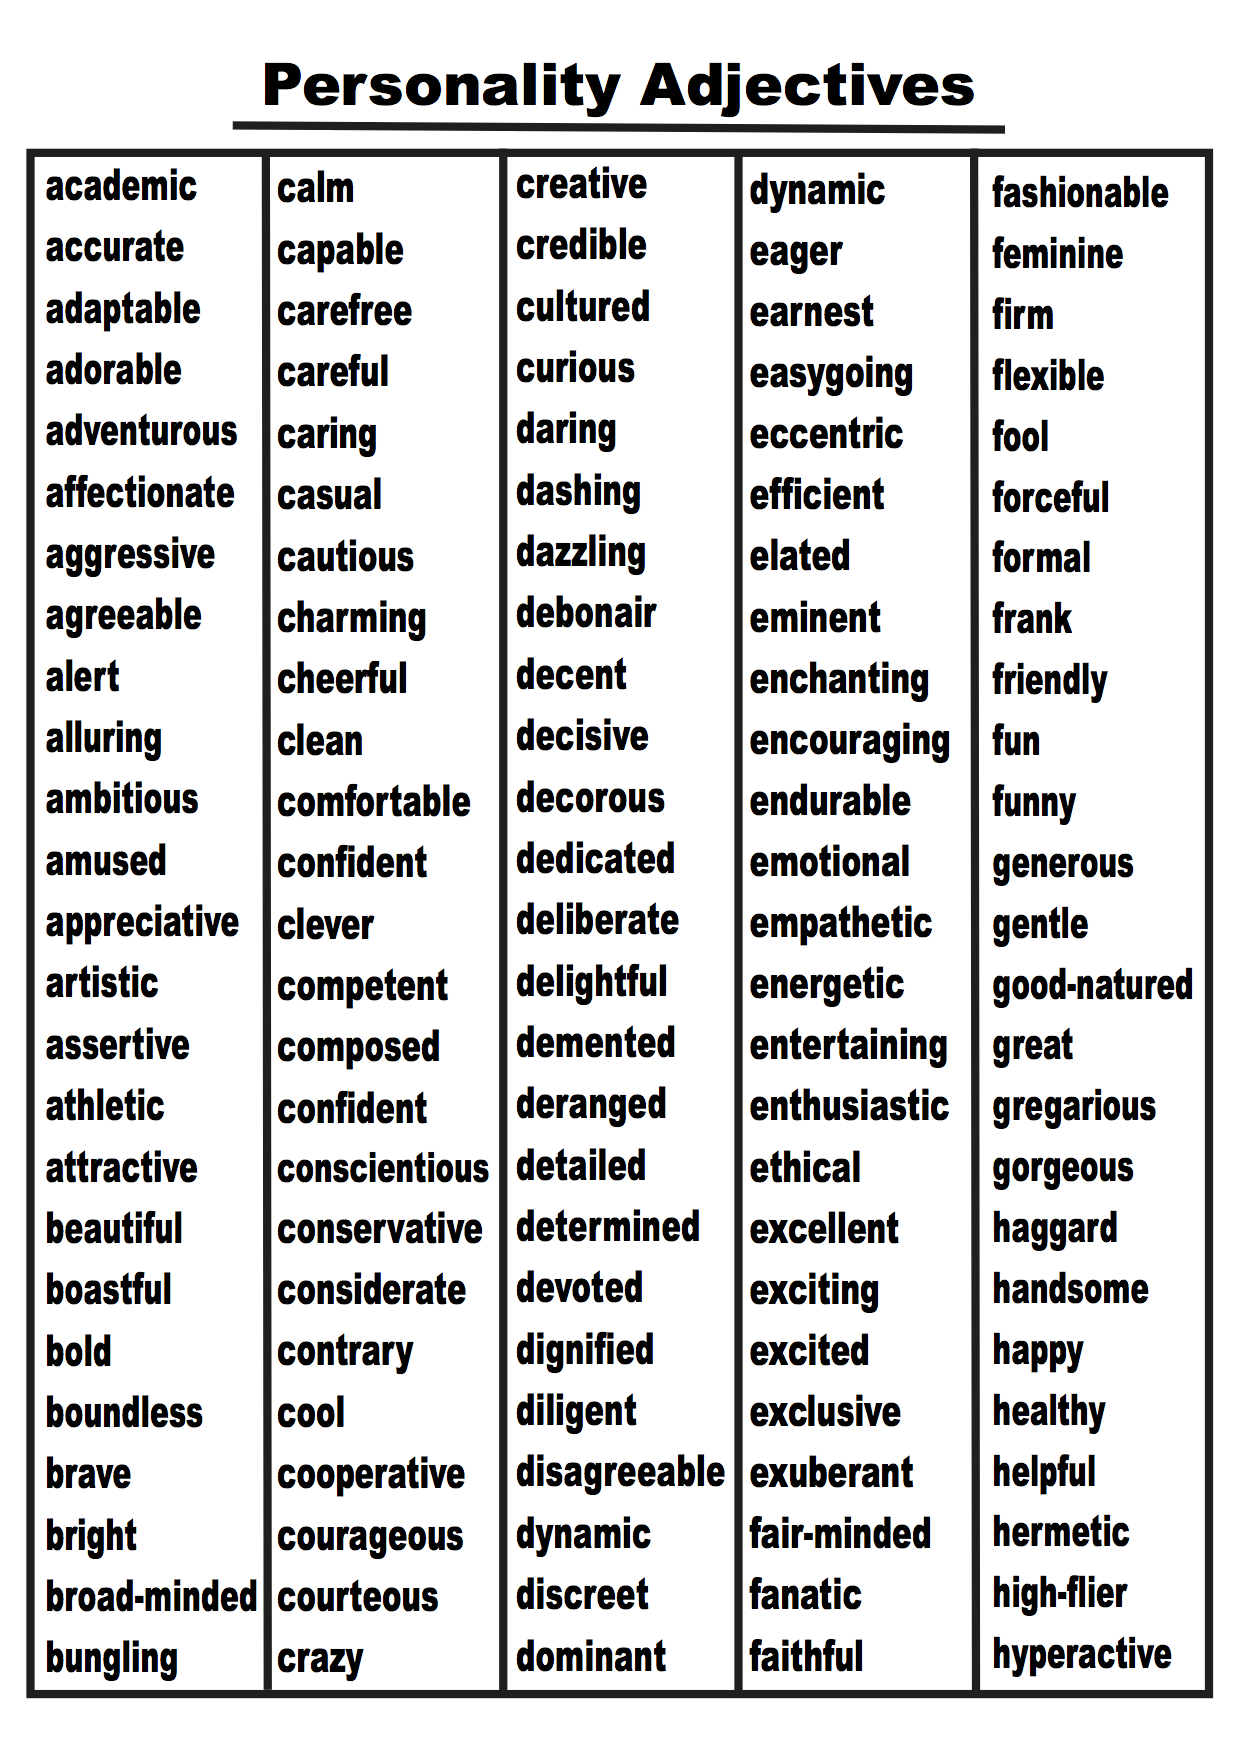 a classroom ready word personality adjectives list   a classroom ready 300 word personality adjectives list print out an a3 version and